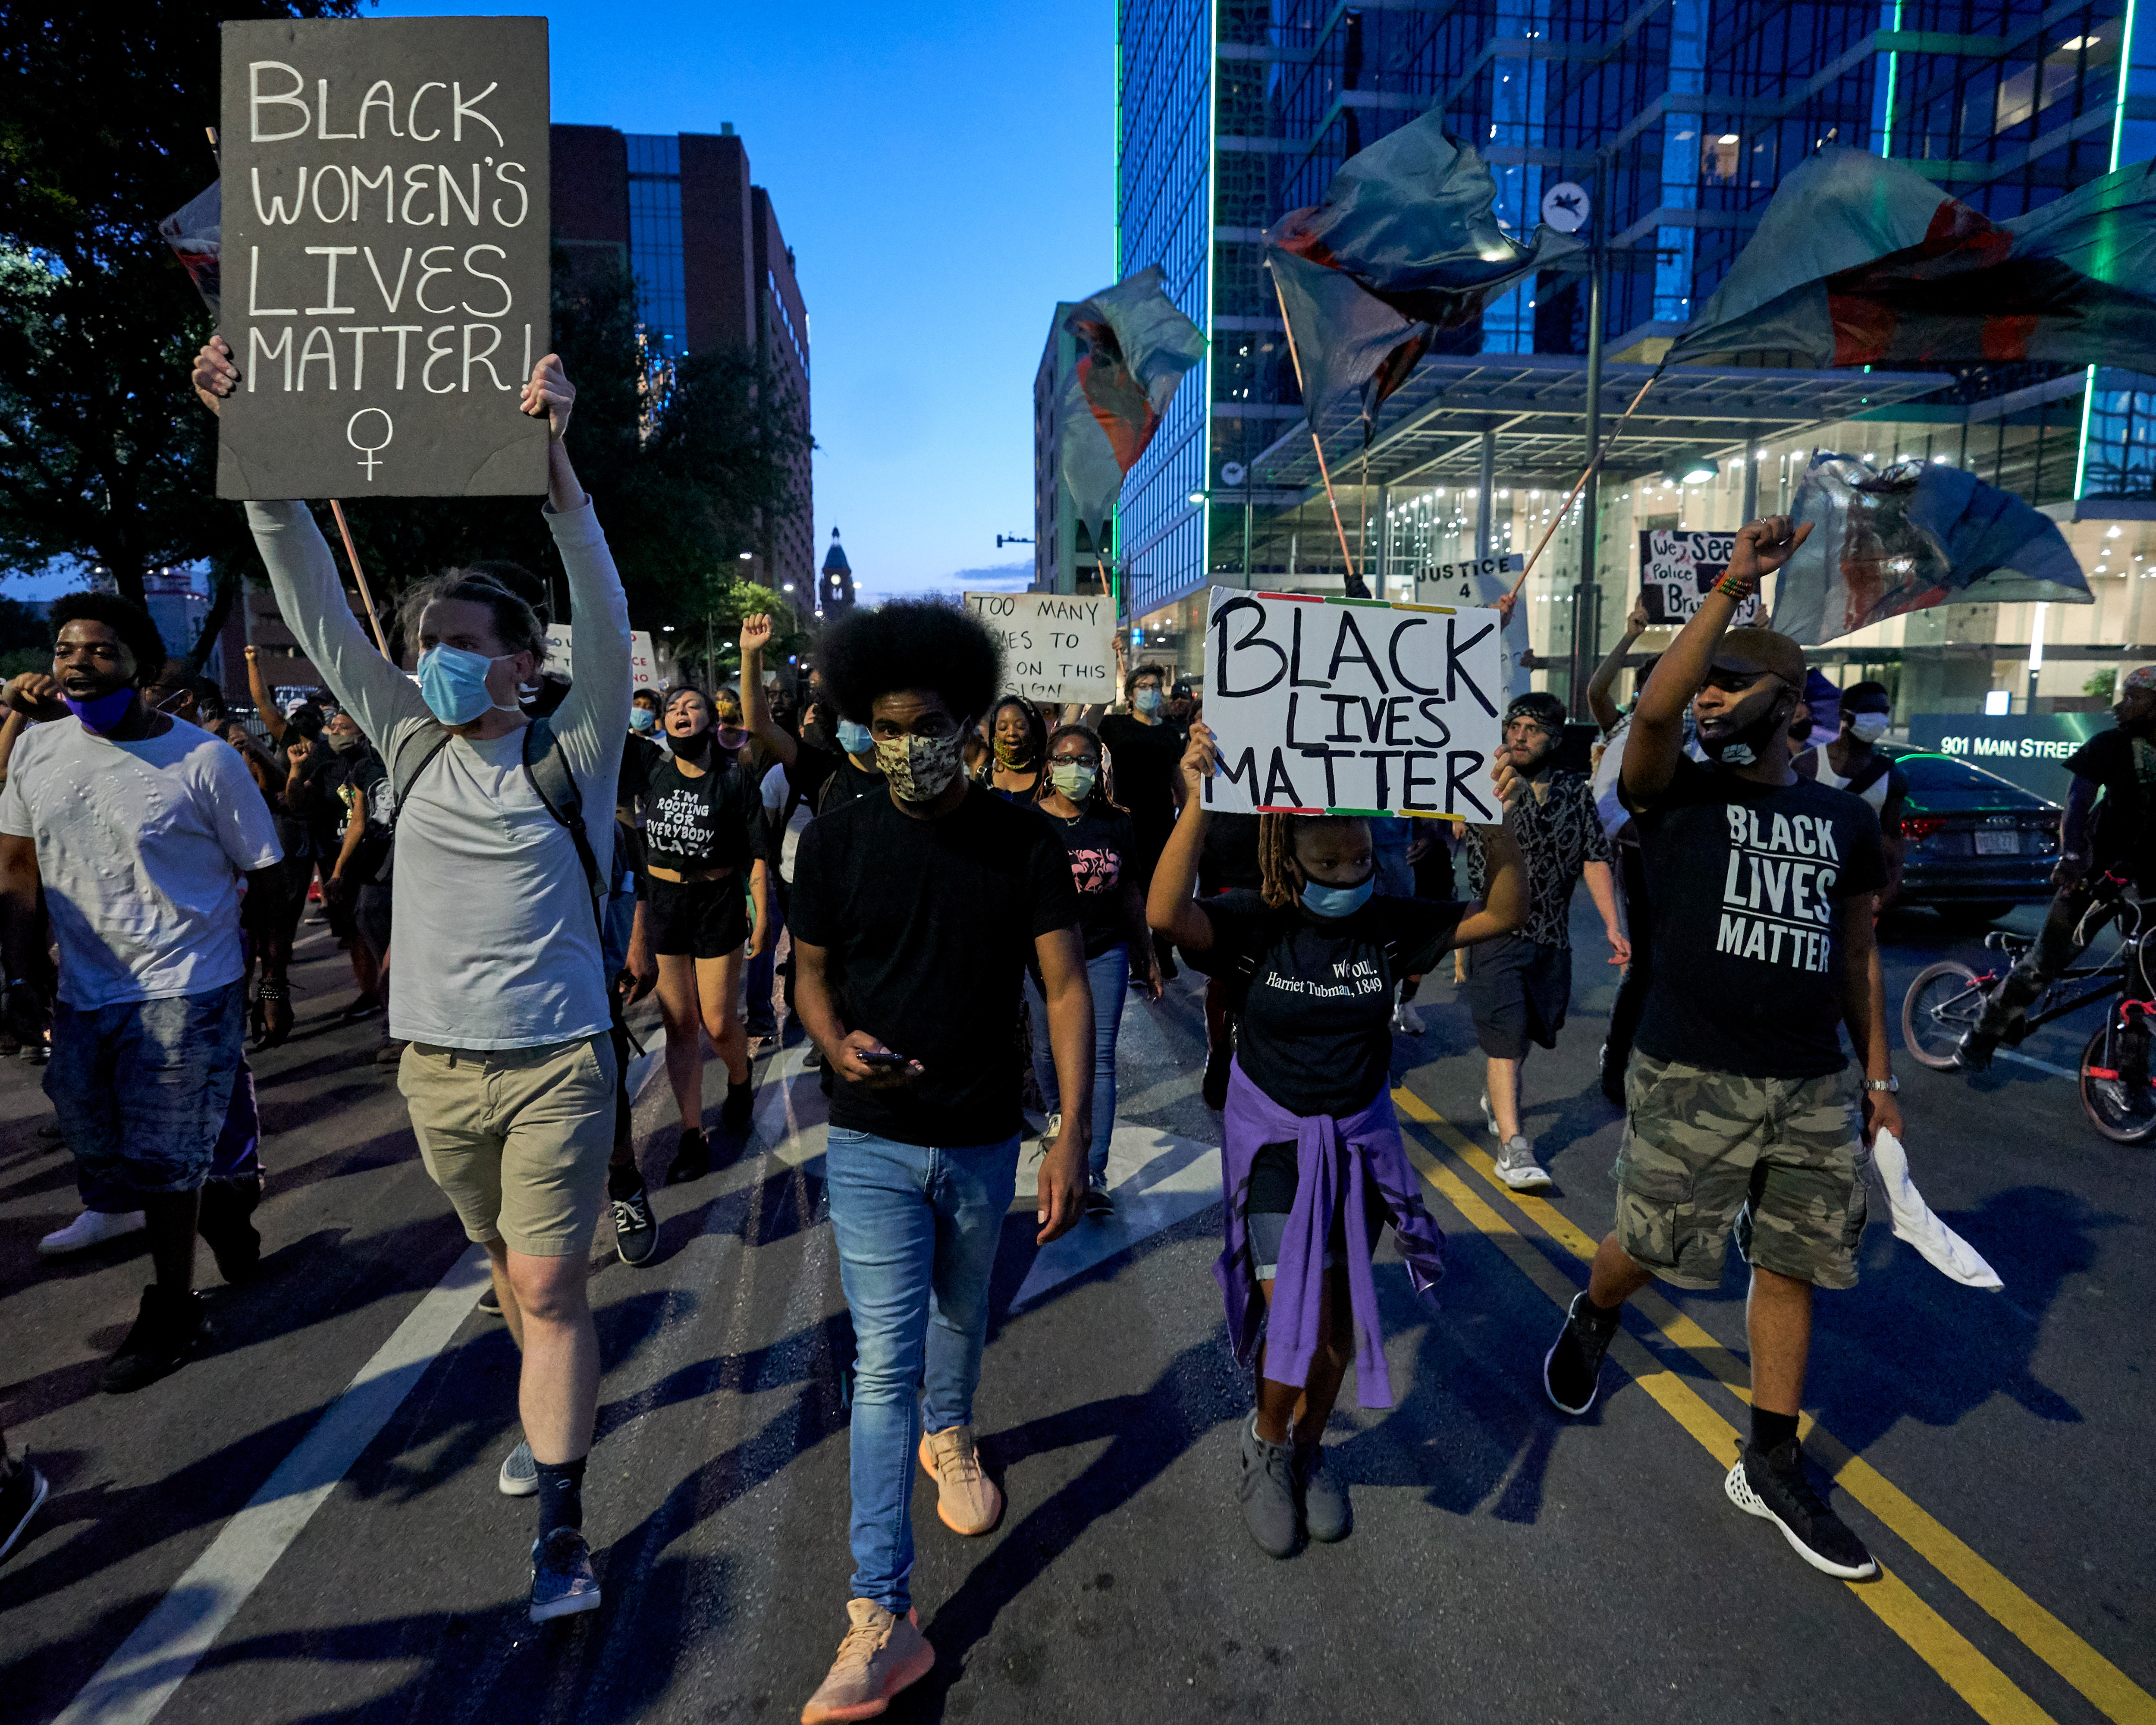 DALLAS, TX - JULY 13: Protesters march down the streets during a rally in remembrance of Sandra Bland on July 13, 2020 in Dallas, Texas. Today is the fifth anniversary of Bland's death by hanging in her jail cell three days after her arrest at a confrontational traffic stop. (Photo by Cooper Neill/Getty Images)